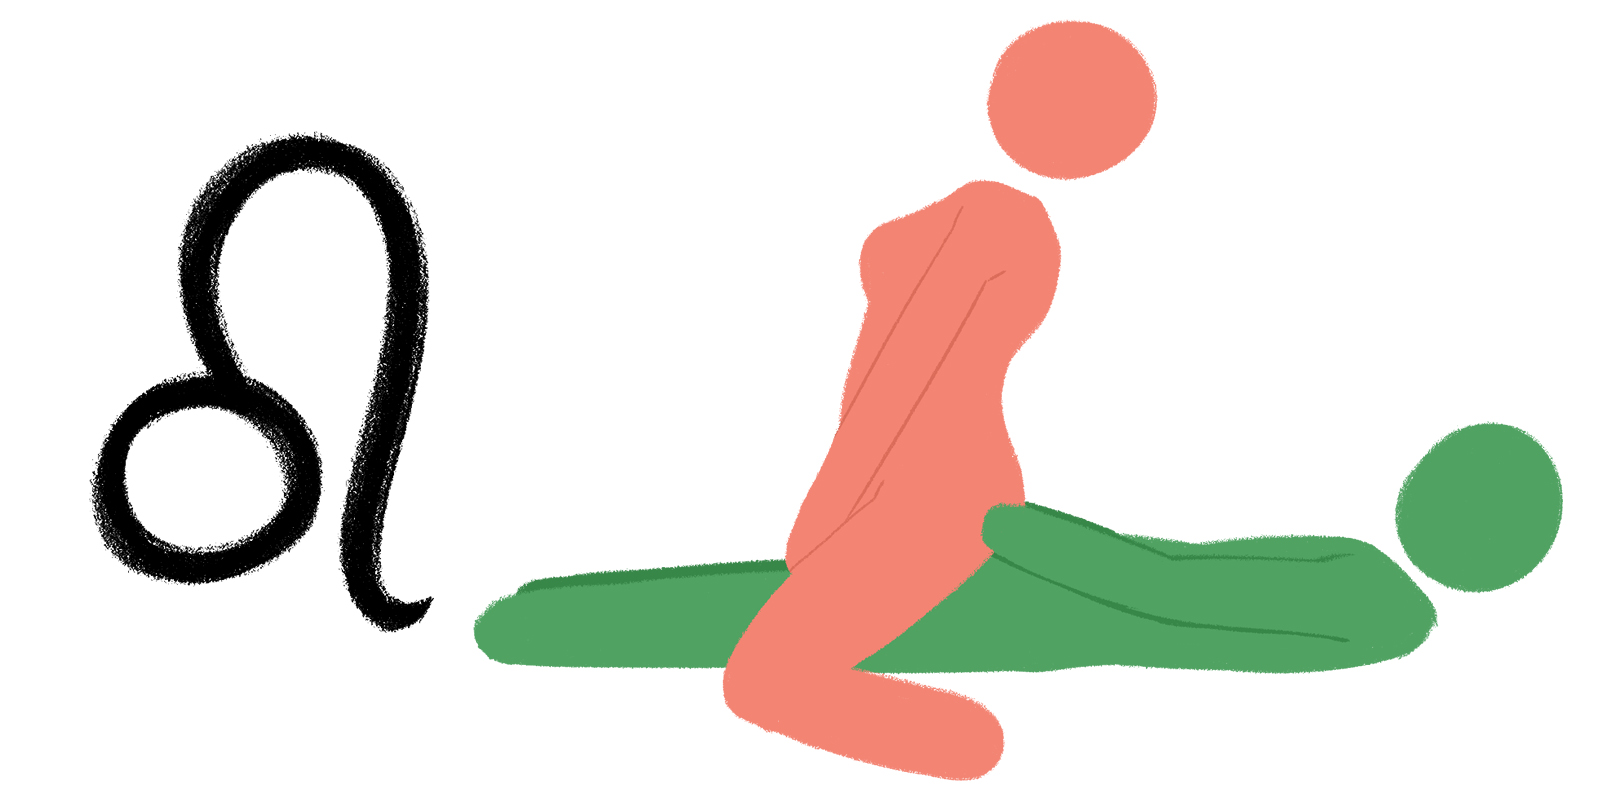 Best Sex Positions According To Your Zodiac Sign